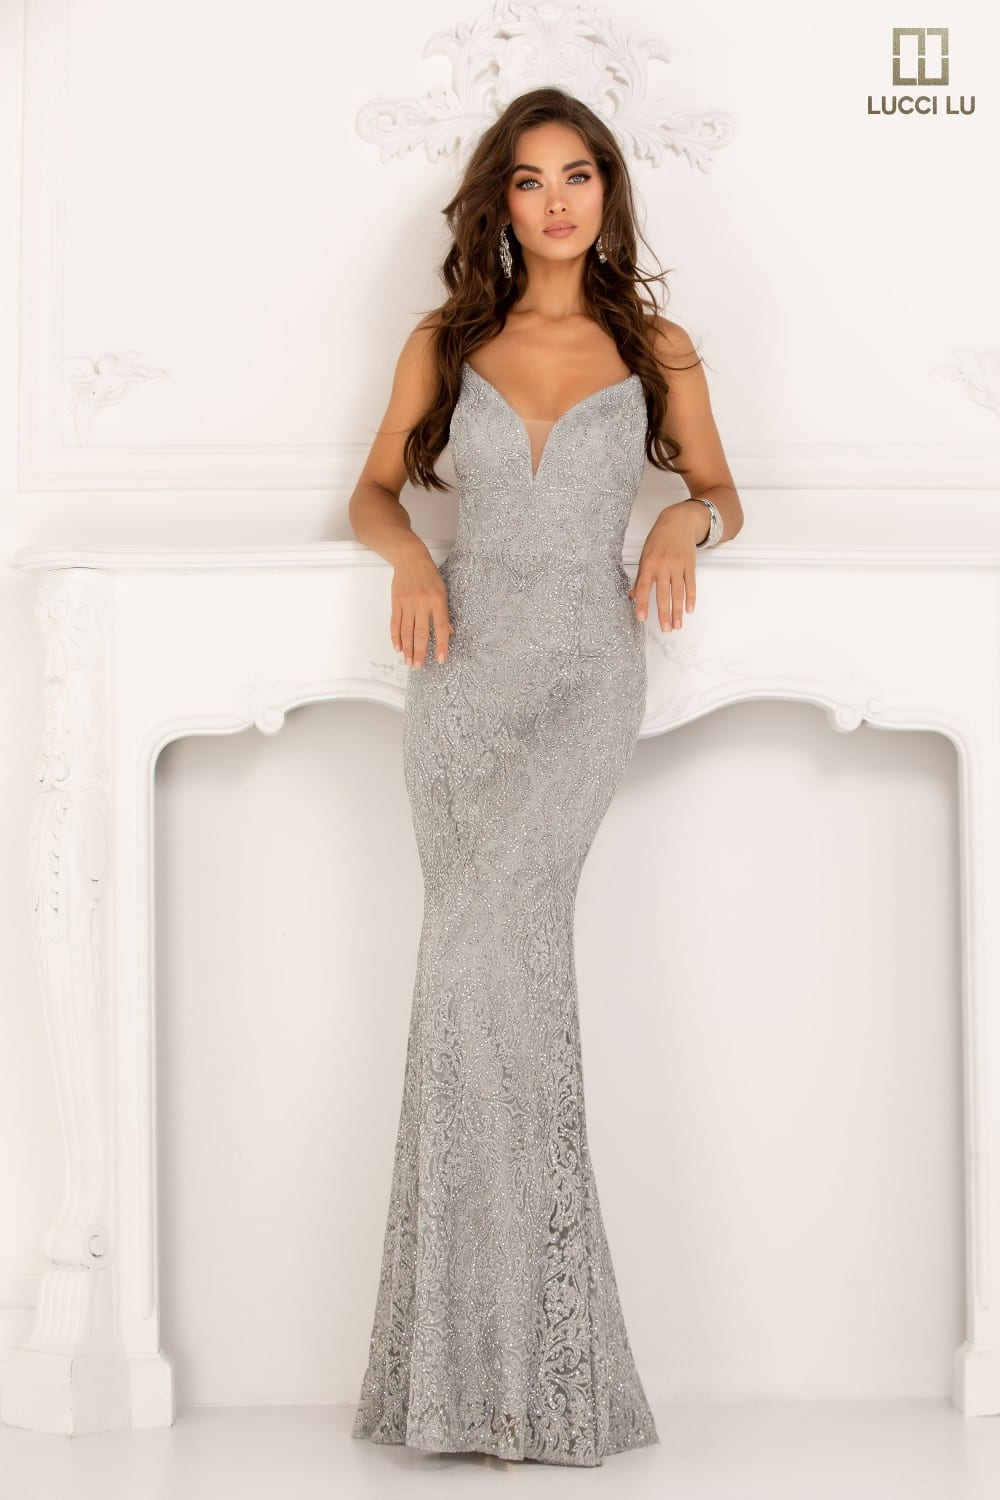 Formal Wear, long, embroidery tulle, v-neck, straight, open lace-up back, beaded Accents